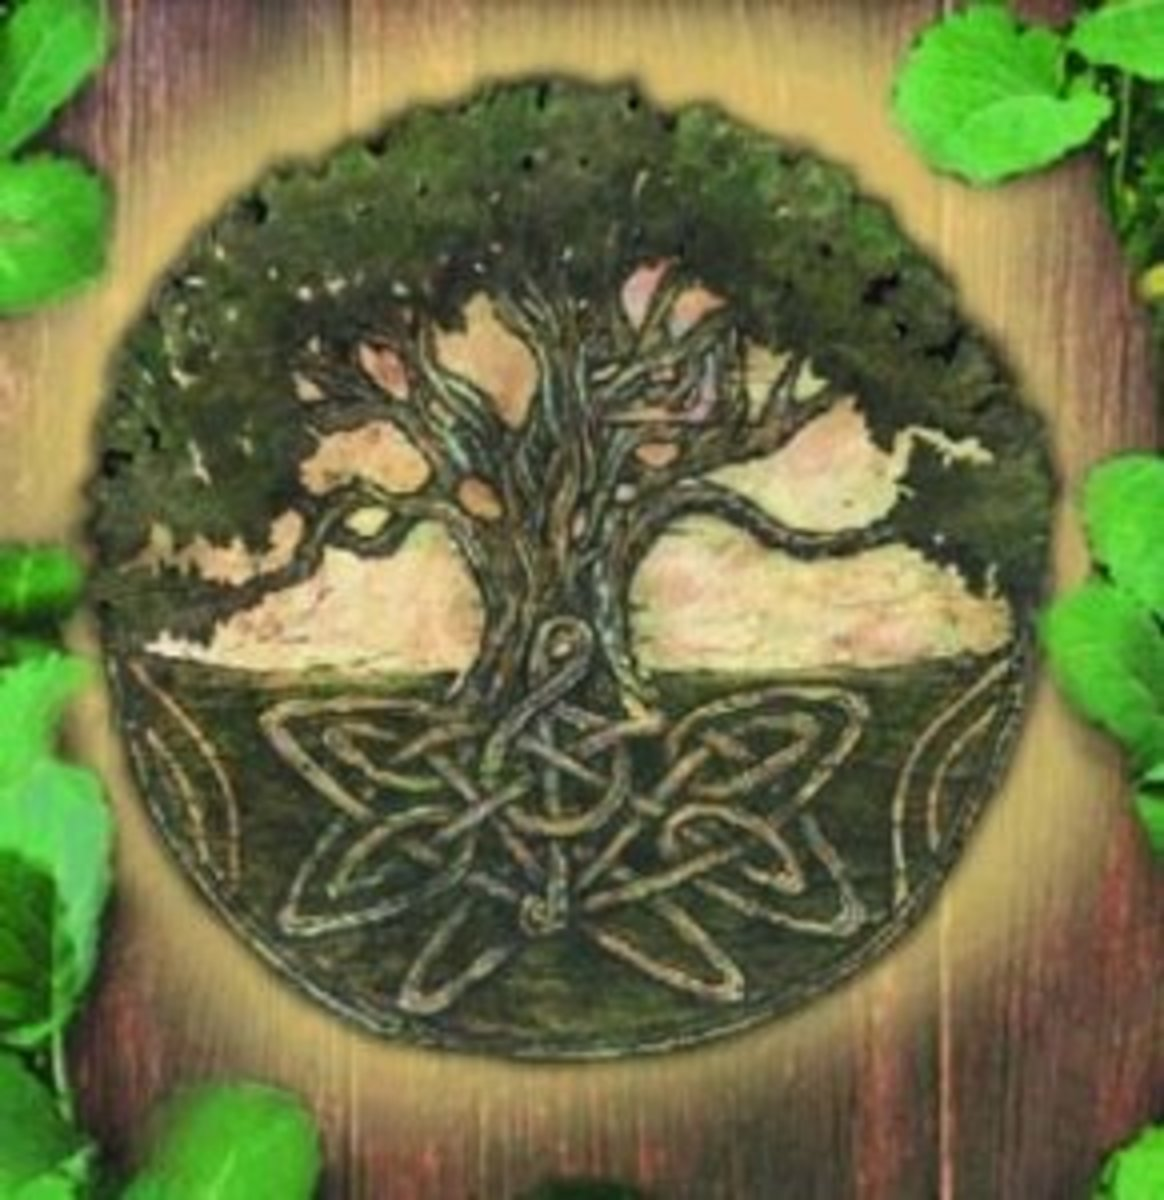 The Celtic tree is a symbol of the eternal renewal of life - an important theme in Celtic mythology.